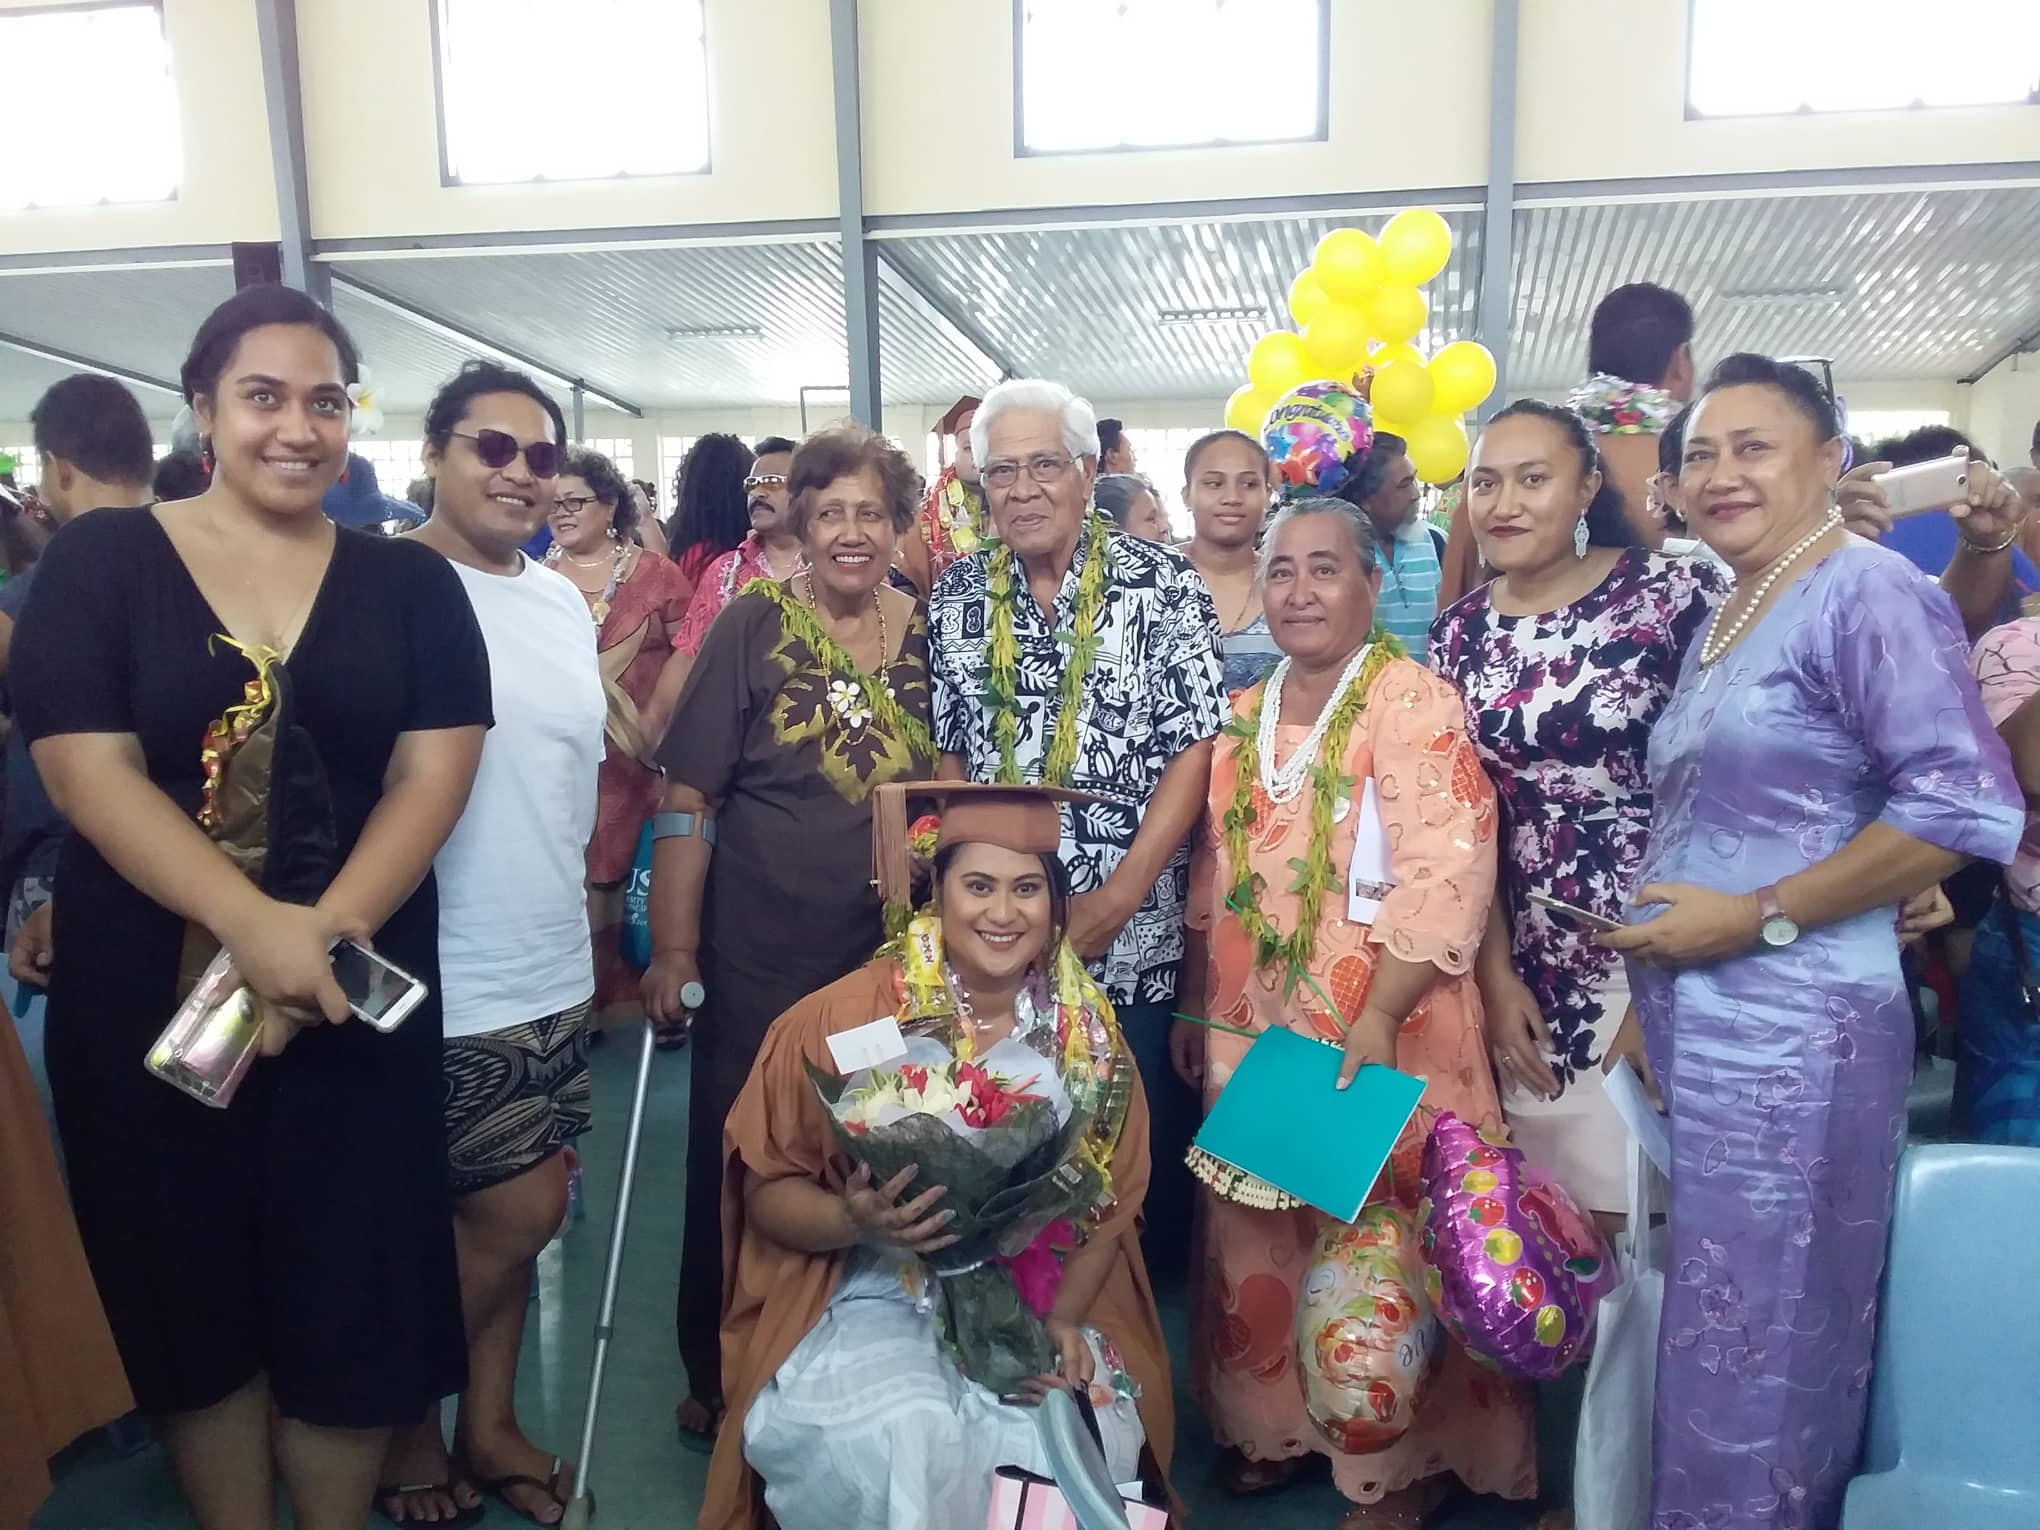 Fuamata with her proud family and friends